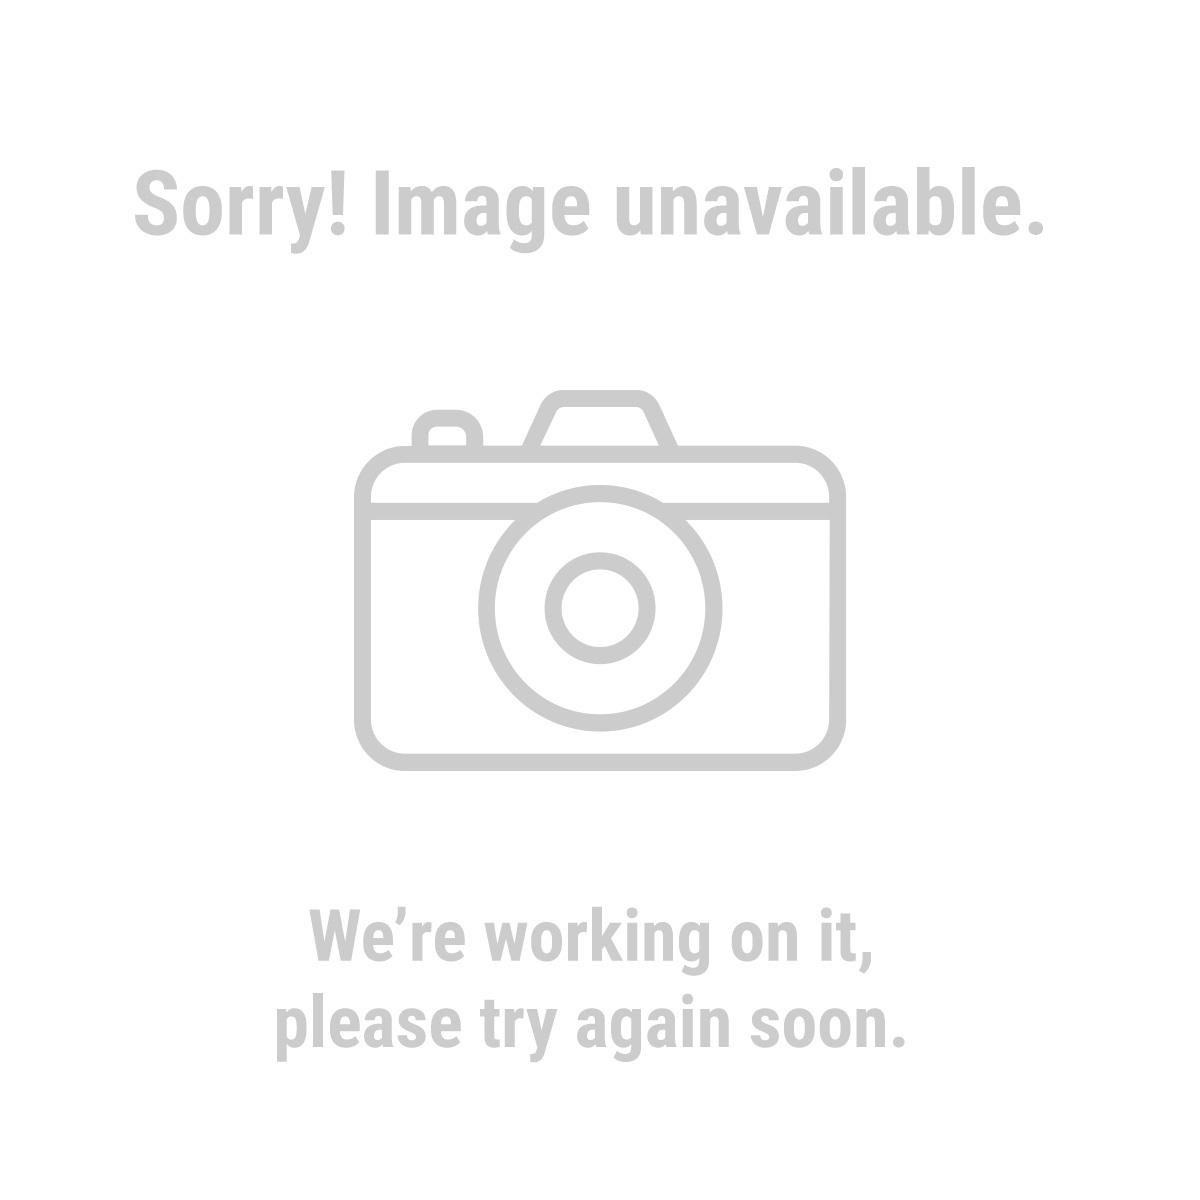 Pittsburgh 67936 3 Piece Impact Socket Adapter Set